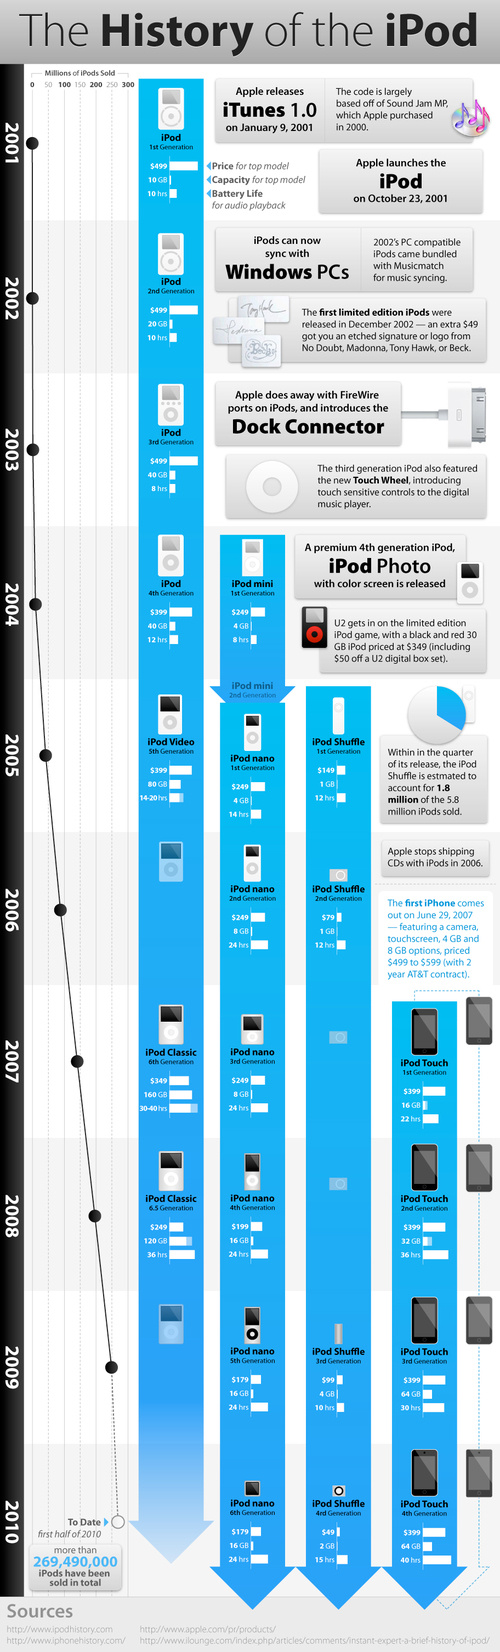 The History of the iPod